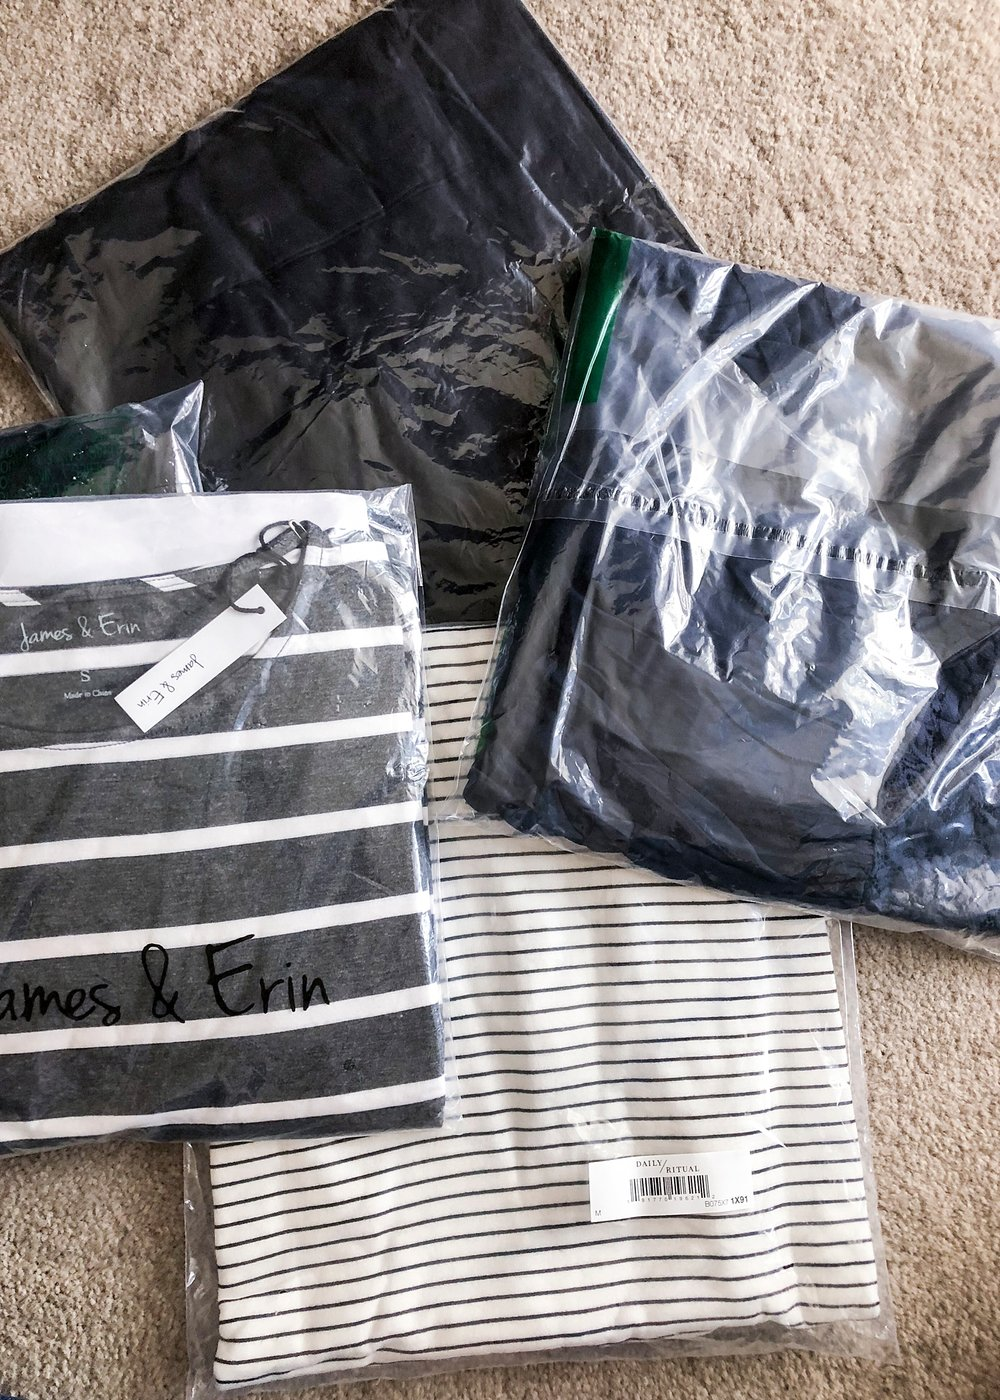 This is my first Amazon Prime Wardrobe shipment!  I tried everything on, so you could see and I reviewed the entire process on the blog for all of the over 40 fashionistas out there :)